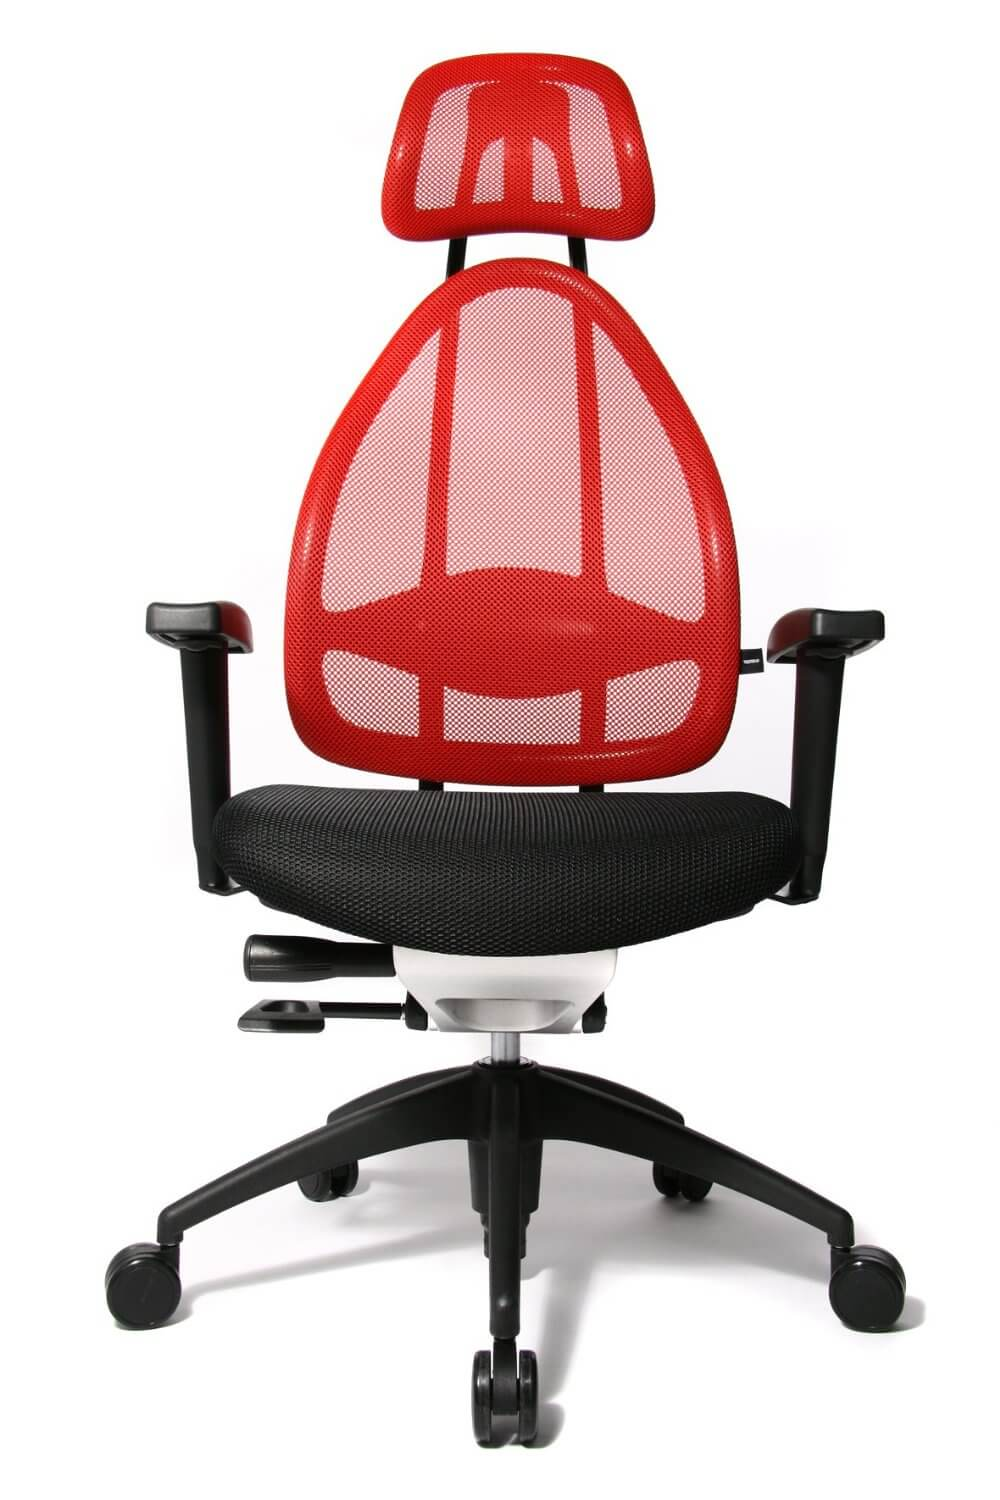 Office Chairs Bestsellers 2021 Test Comparison The Best Office Chairstest Vergleiche Com Compare The Test Winners Test Compare Offers Bestsellers Buy Product 2020 At Low Prices